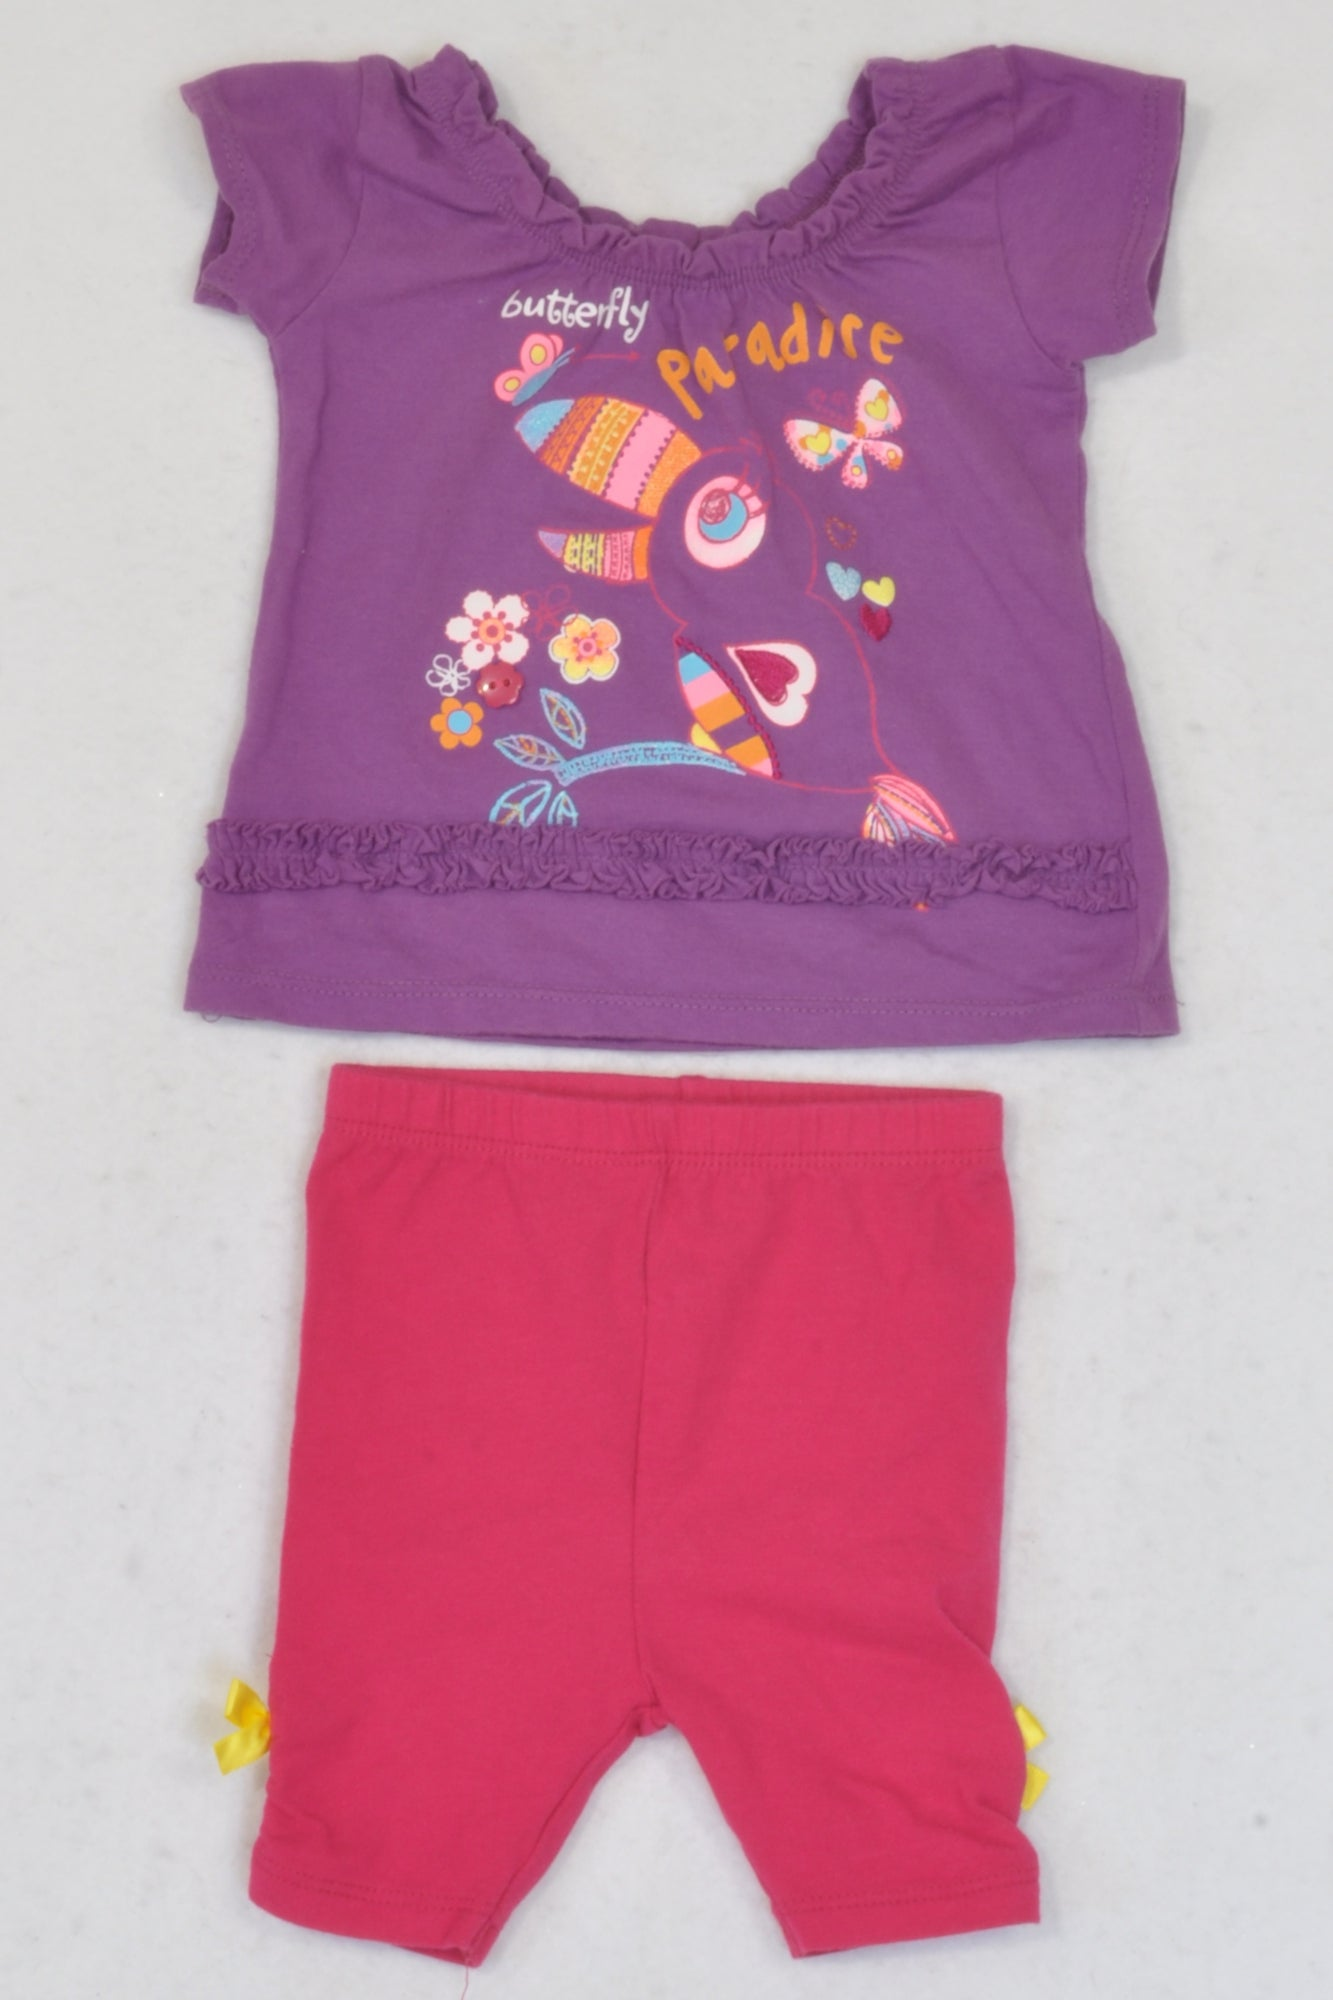 Woolworths Purple Butterfly Paradise Tank & Leggings Outfit Girls 0-3 months